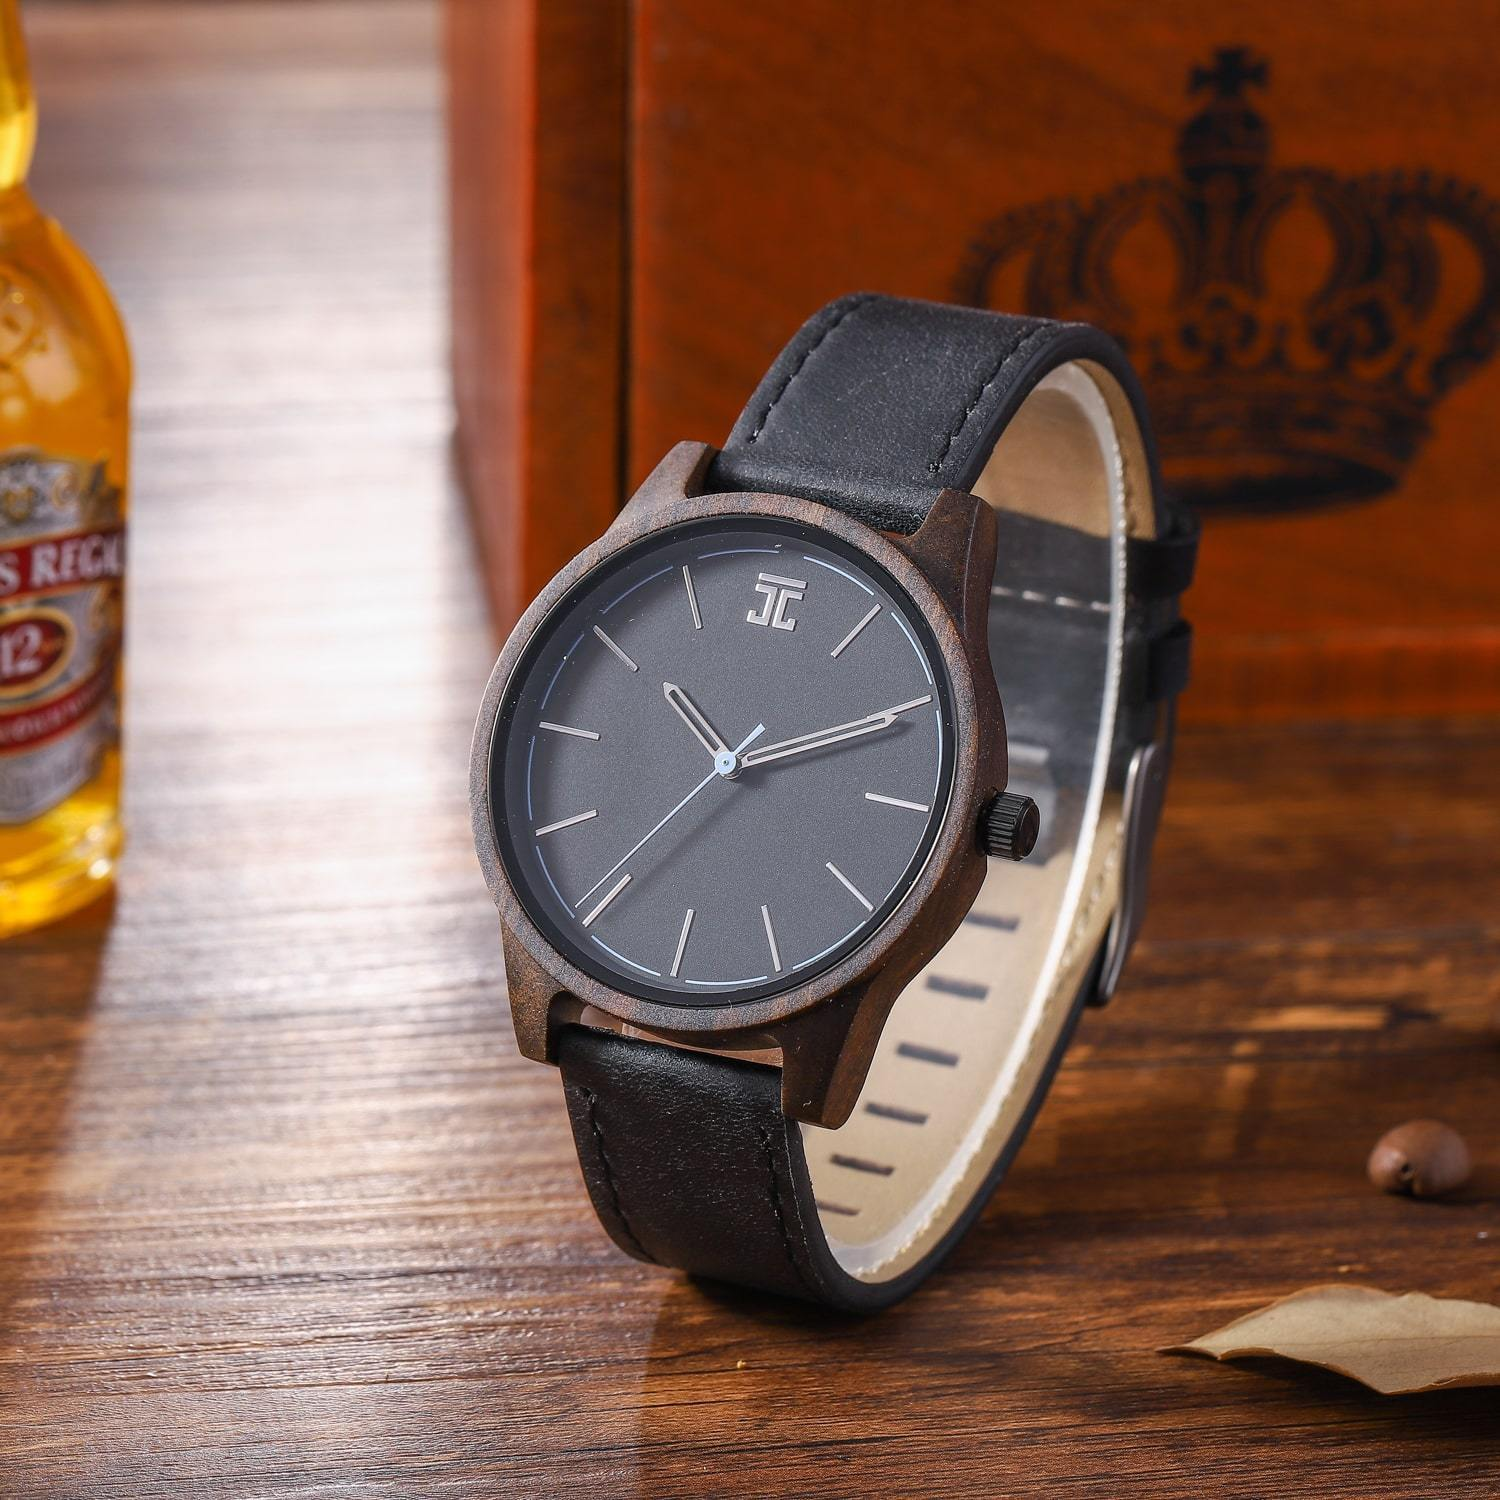 42mm dark sandalwood wooden watch with black face